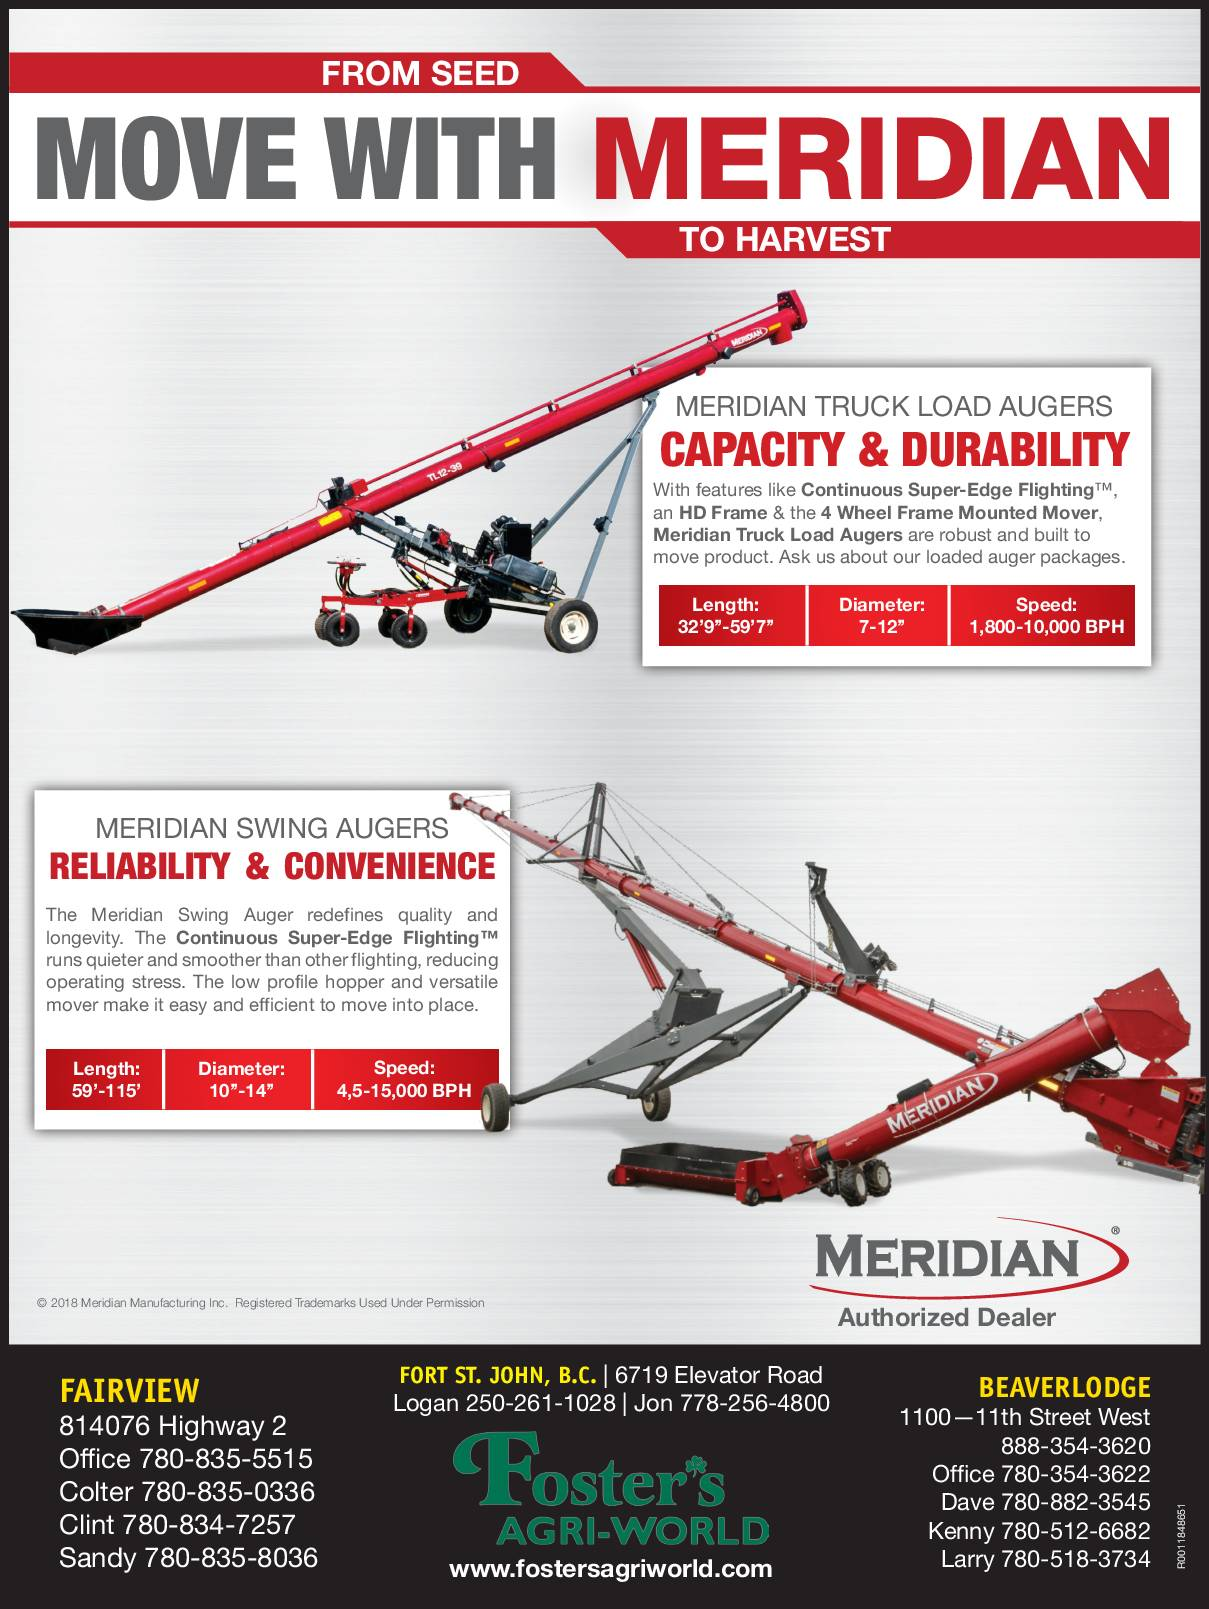 From Seed to Harvest. Move with Meridian